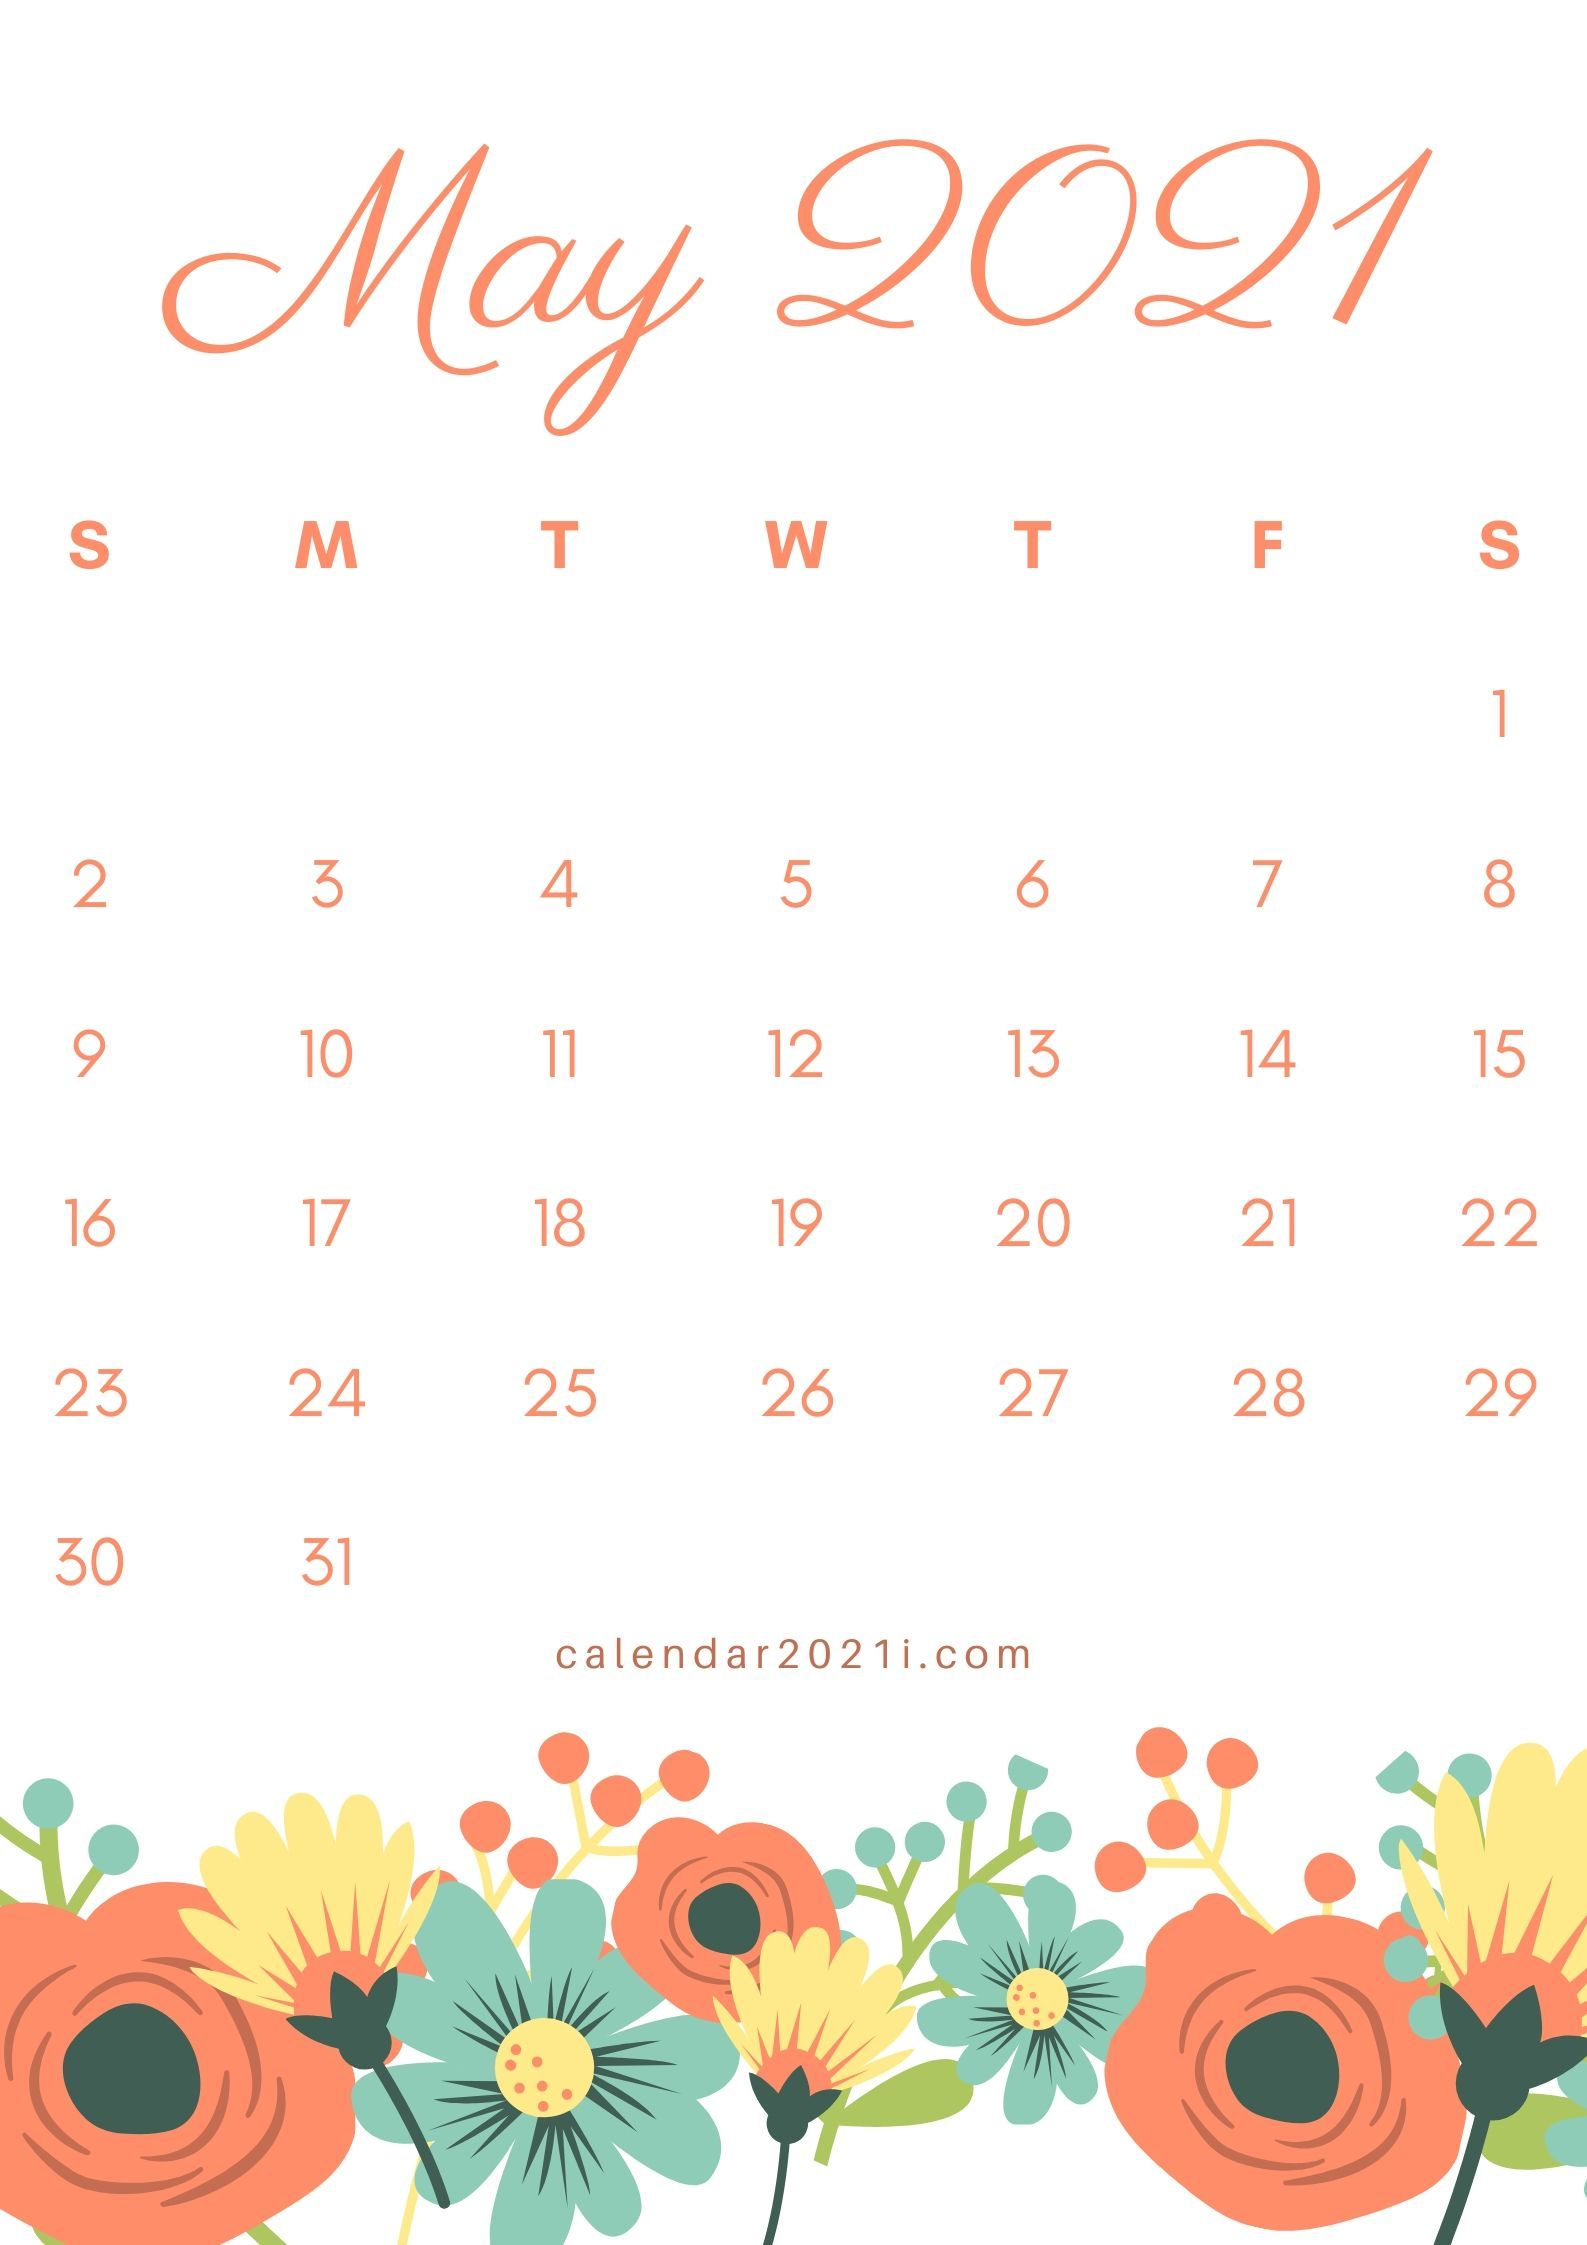 May 2021 Floral Calendar Theme Printable With Amazing Flowers For Decoration Ideas In 2020 Calendar Printables Monthly Template Calendar Themes